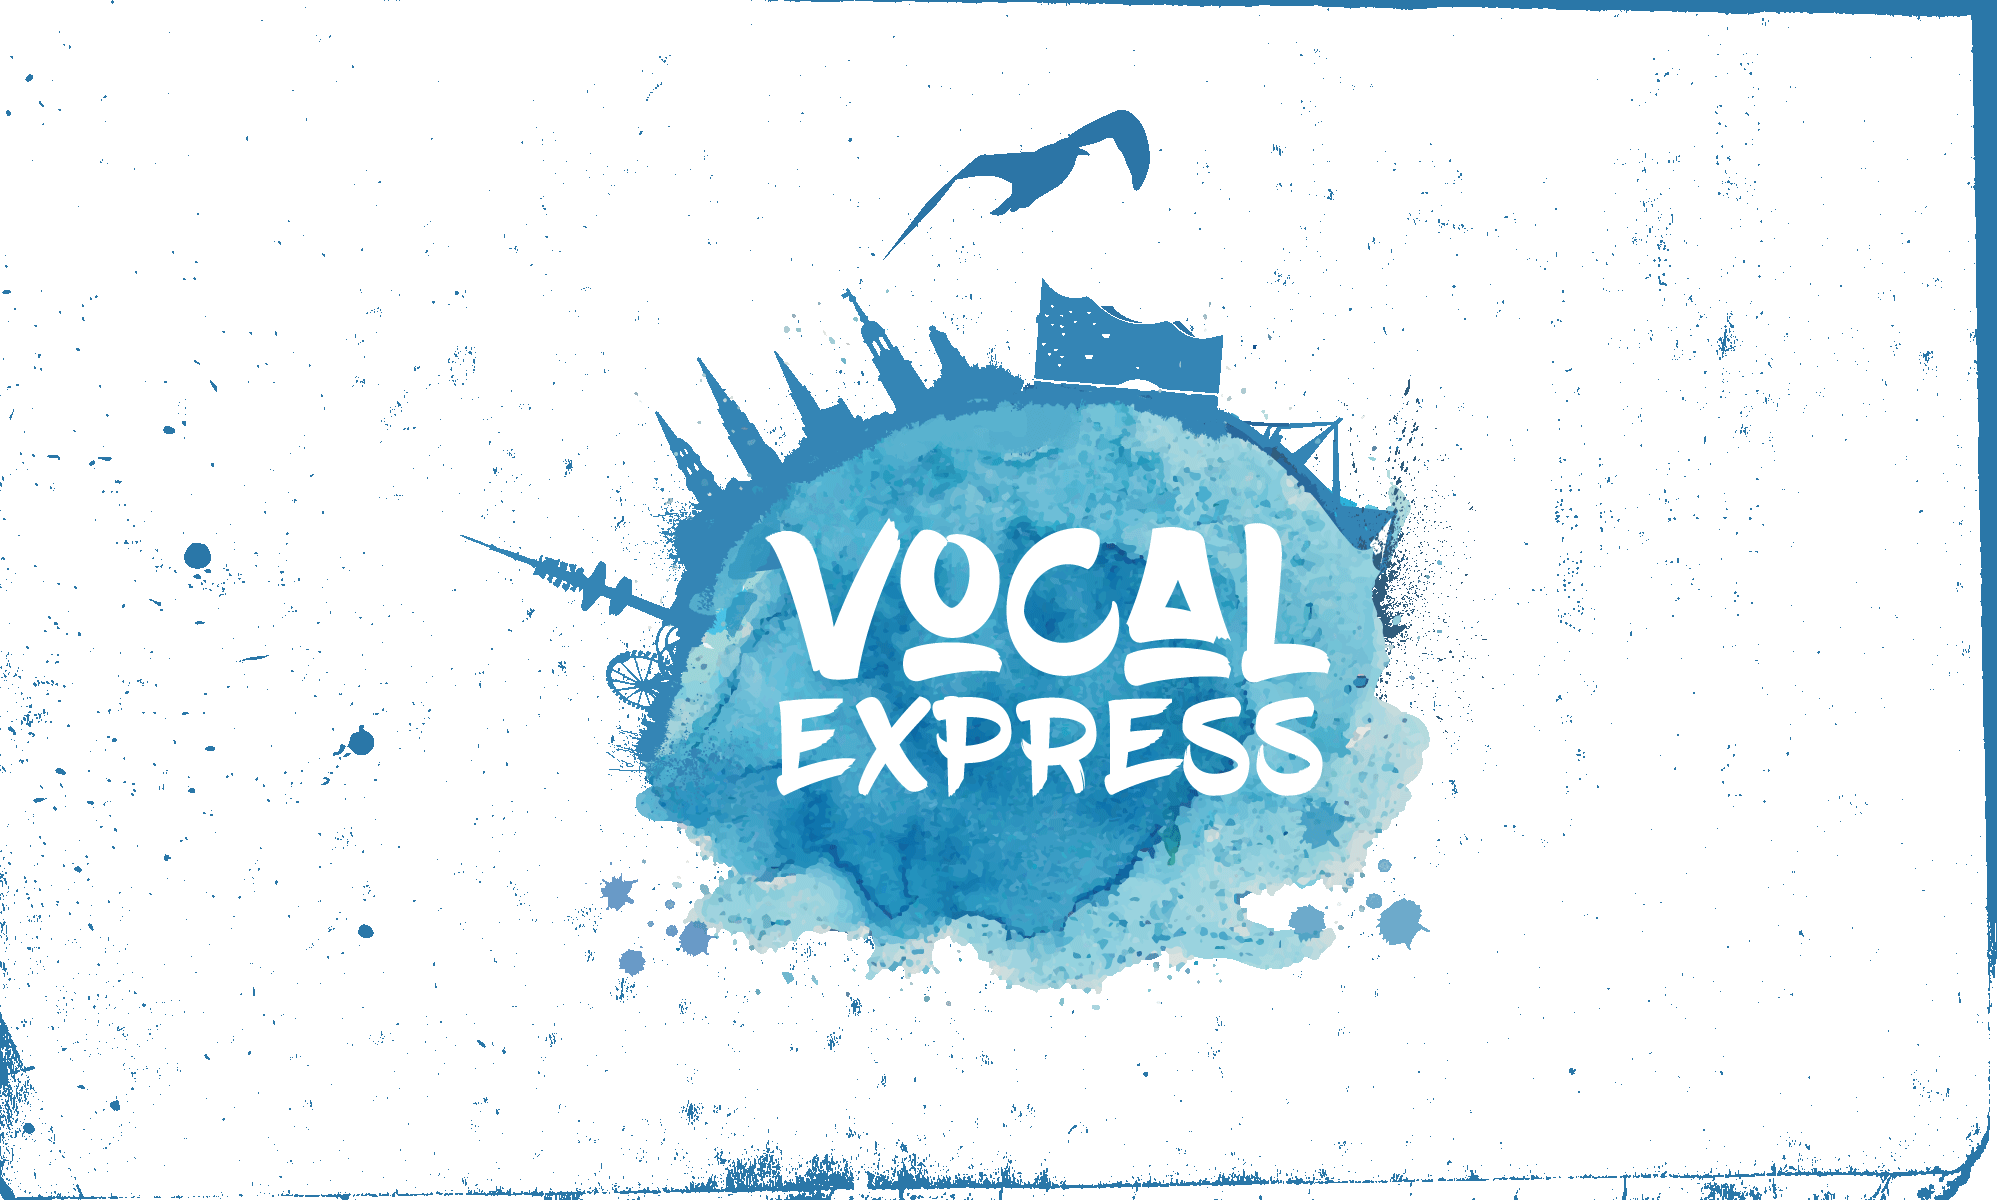 Vocal Express